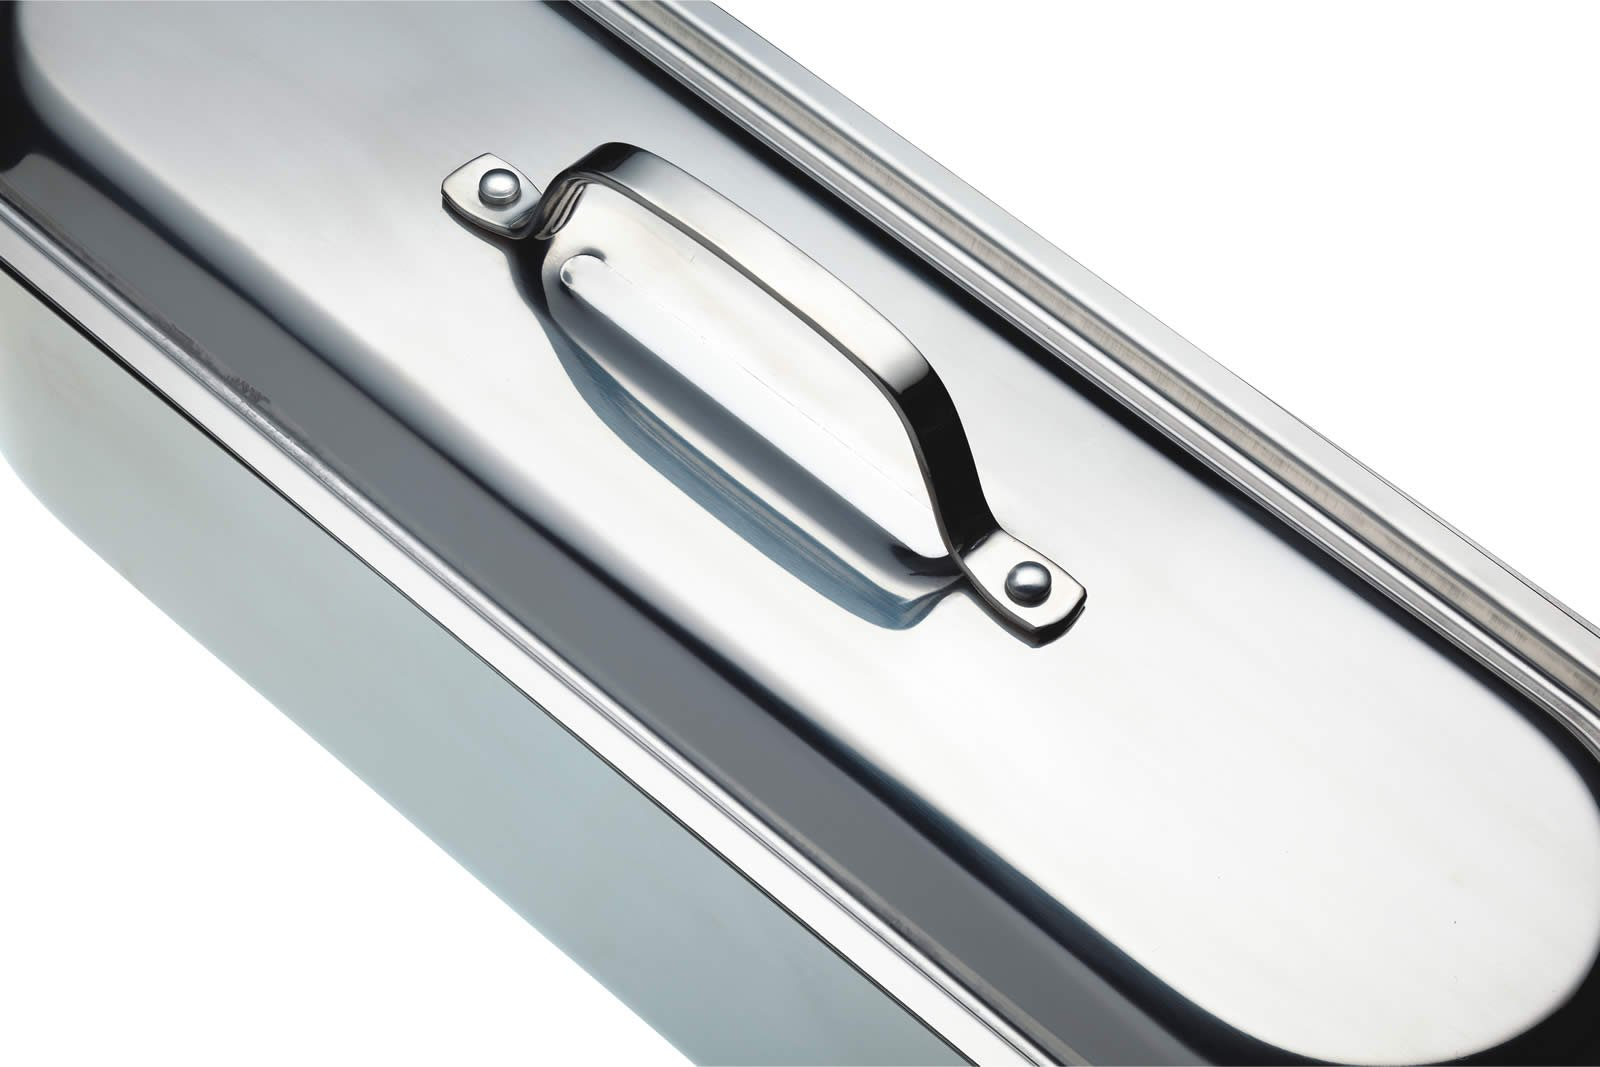 Kitchencraft Induction-safe Stainless Steel Fish Kettle, 45.5 x 15.5 x 10cm by Kitchen Craft (Image #3)